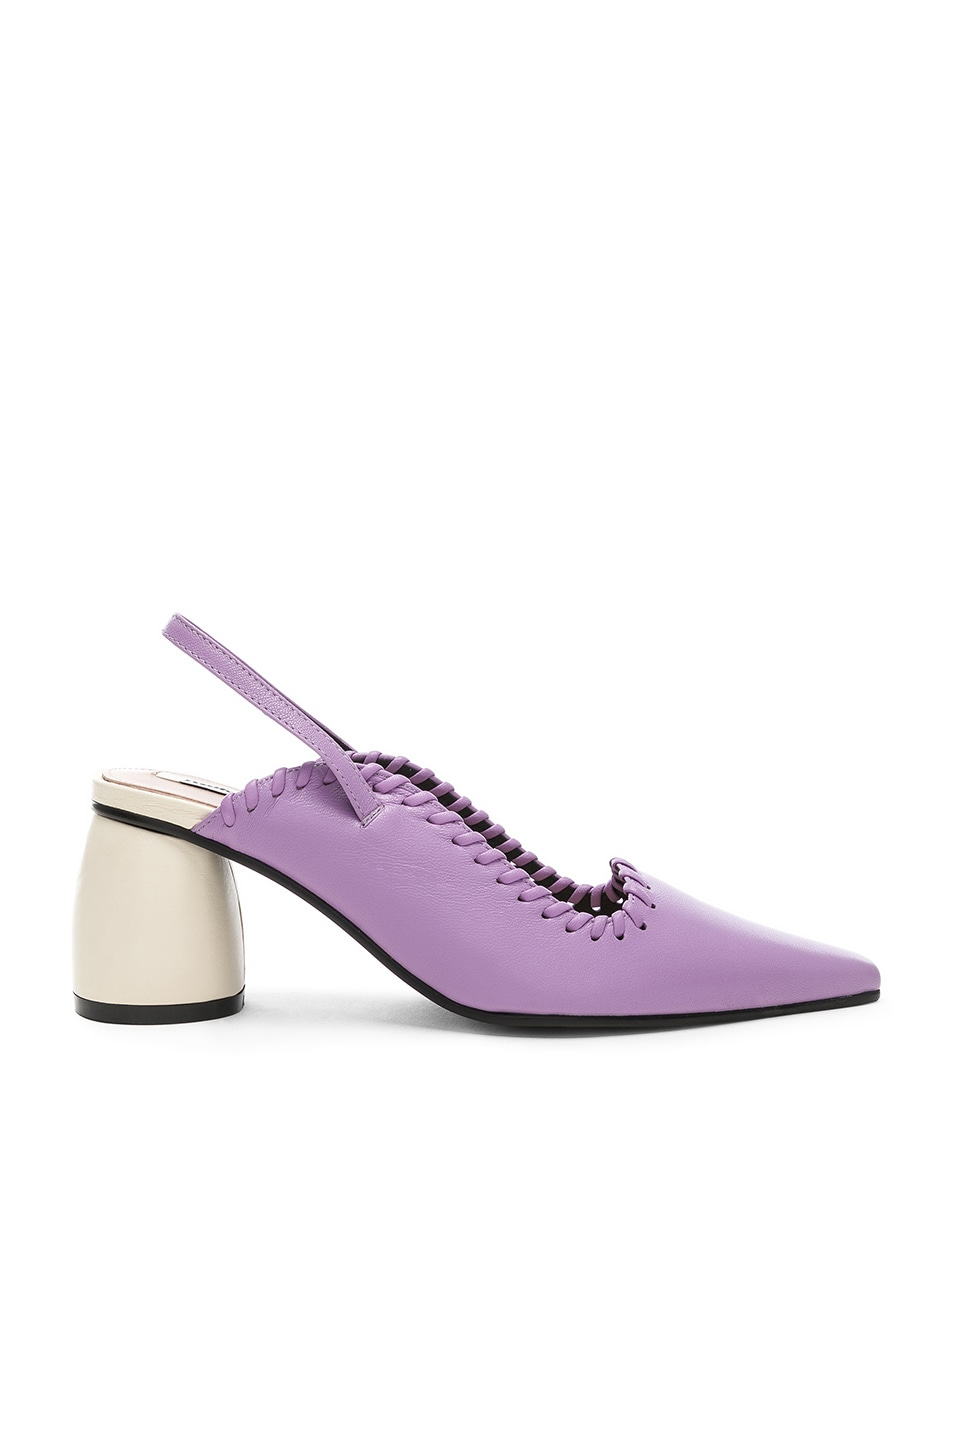 d645a4934dc Image 1 of Reike Nen Curved Middle Slingback in Purple   Ivory